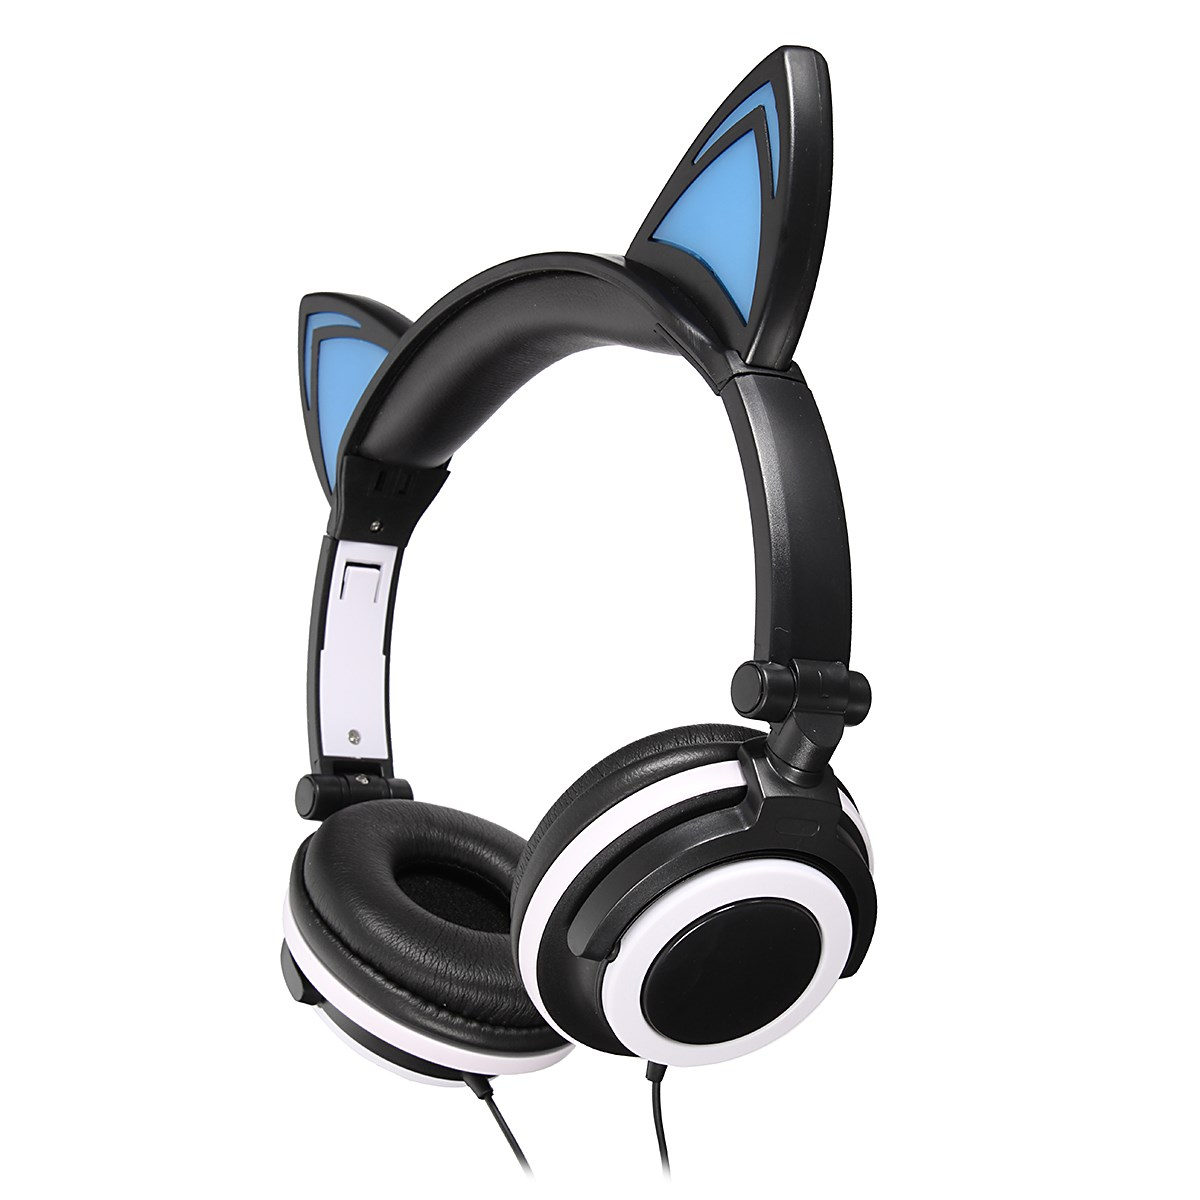 LEORY New Foldable Flashing Glowing Headphones Cat Ear Gaming Headset Earphone With LED Light For PC Laptop Computer Mobile Phon high quality sound effect gaming headset with led light over ear glowing stereo headphones with mic for computer pc laptop gamer